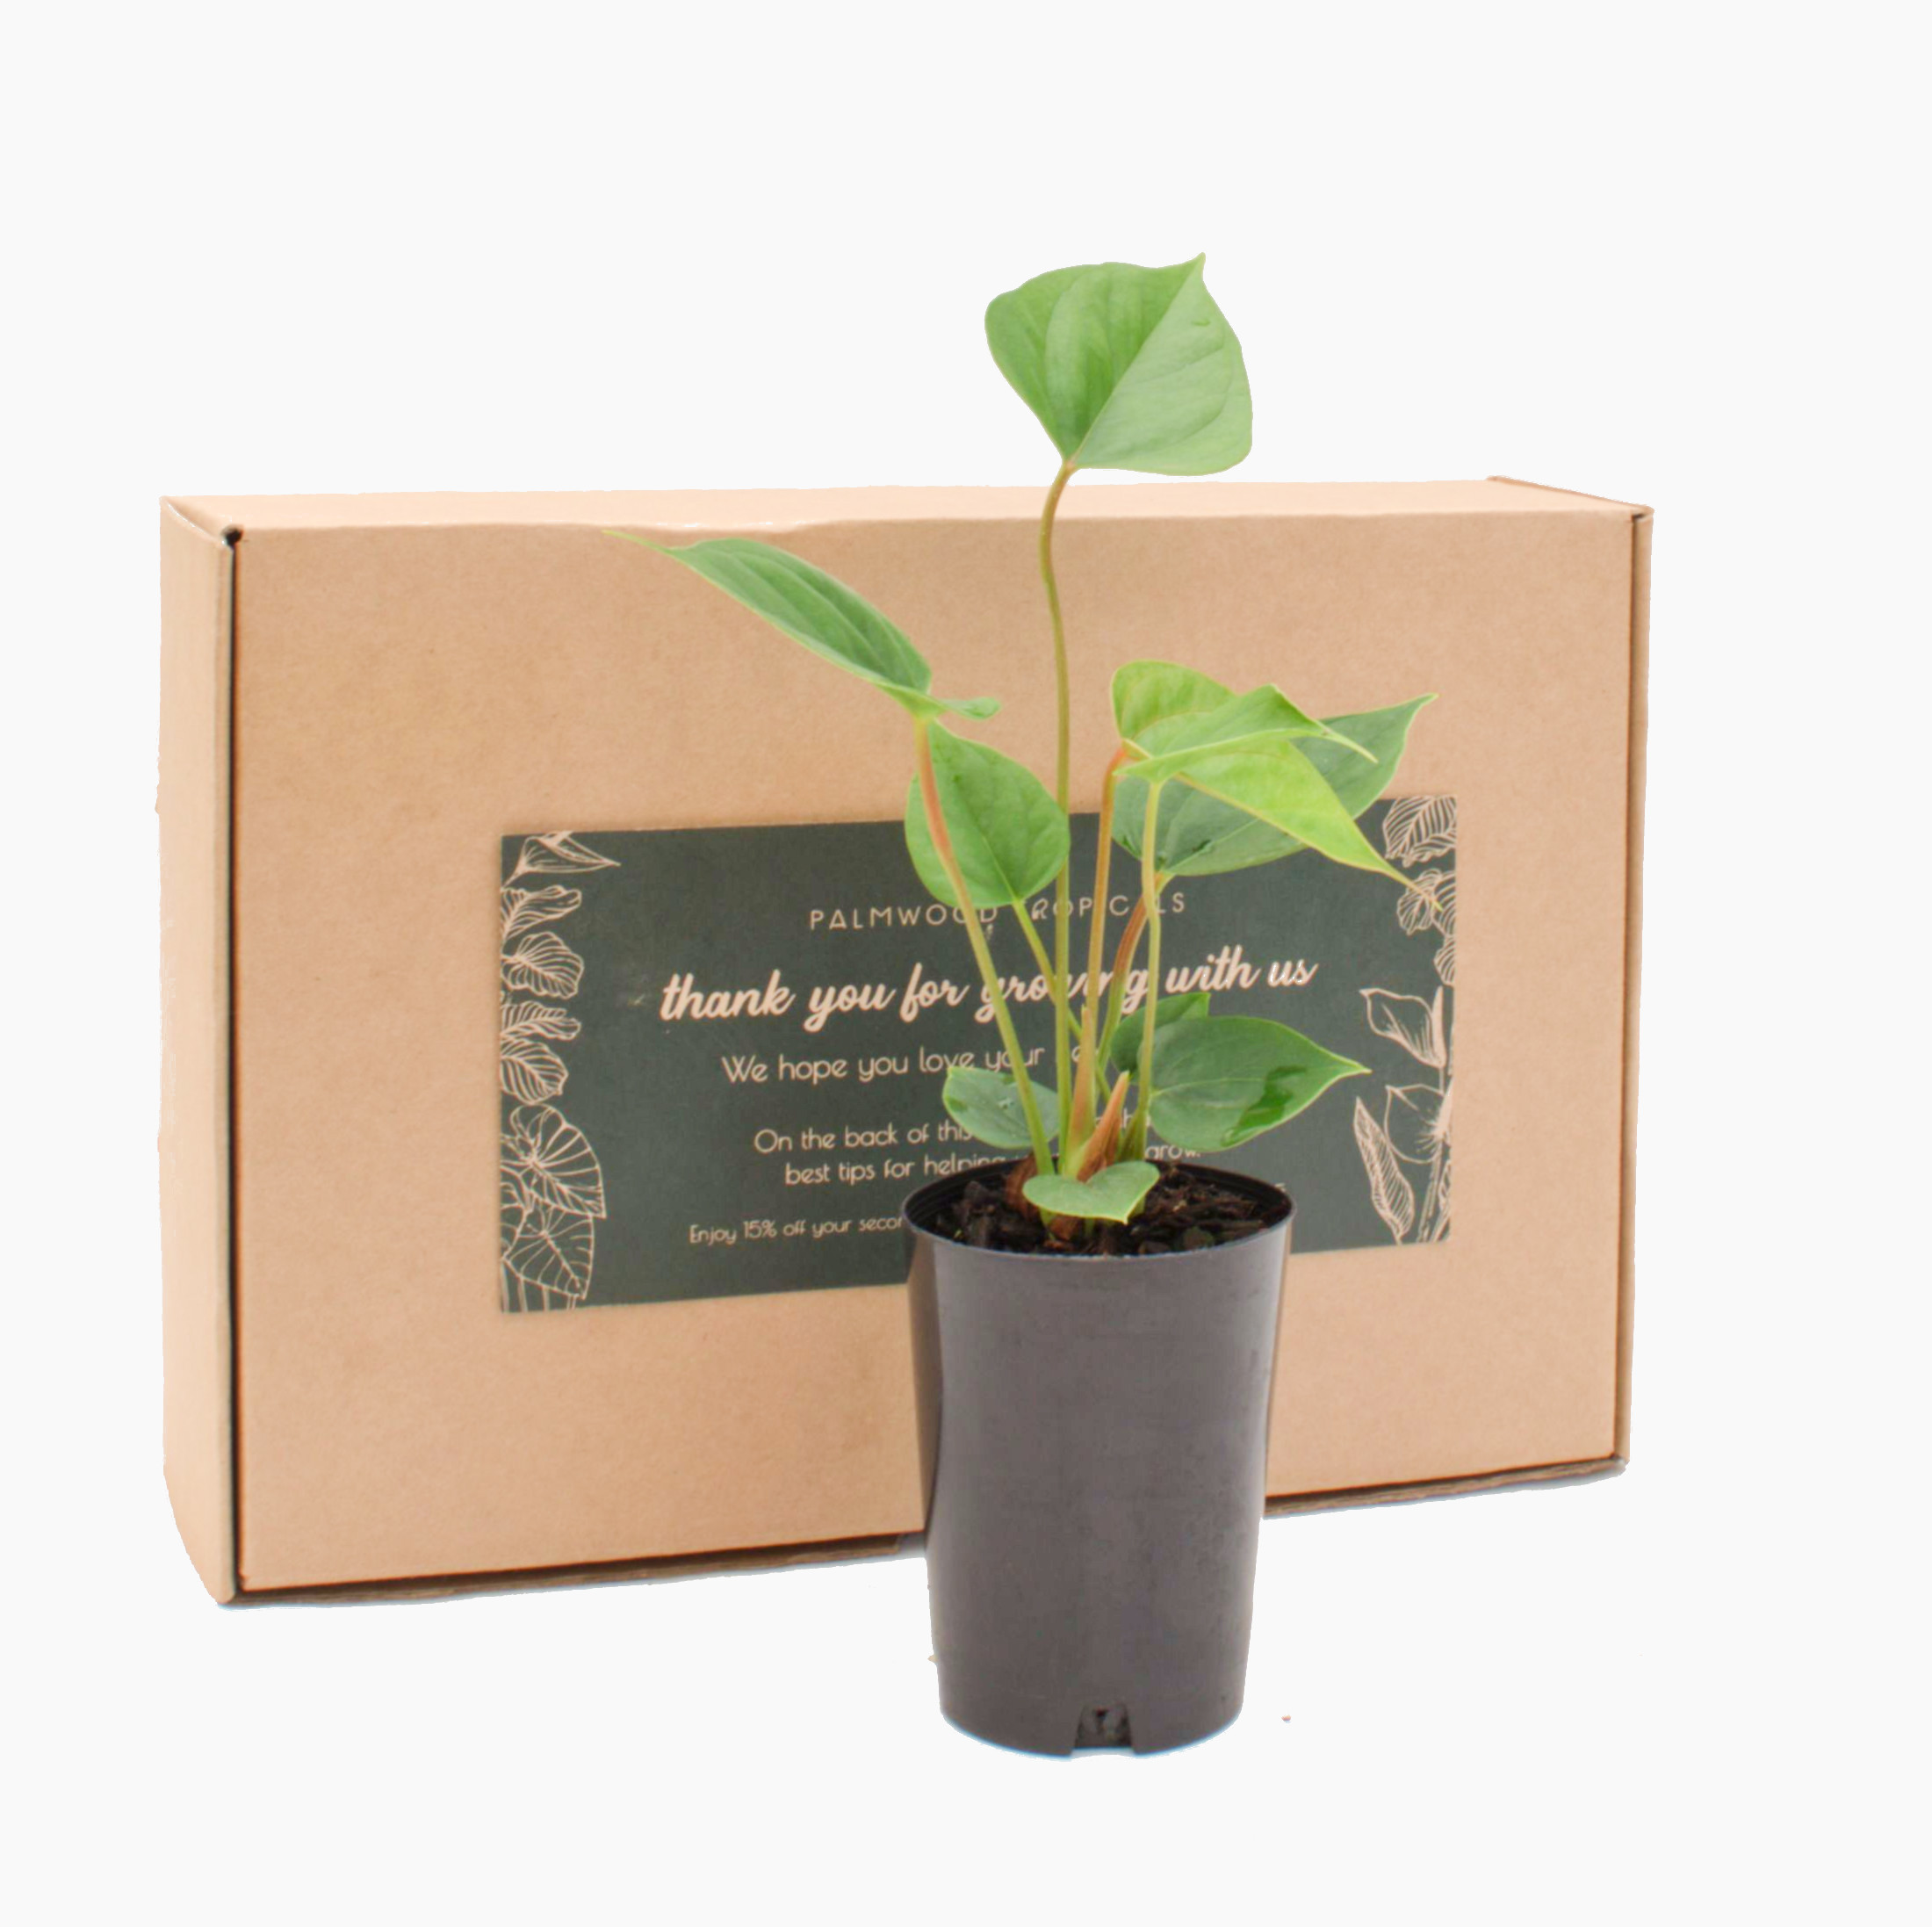 Palmwood Tropicals Online Plants - One Plant Box Angle